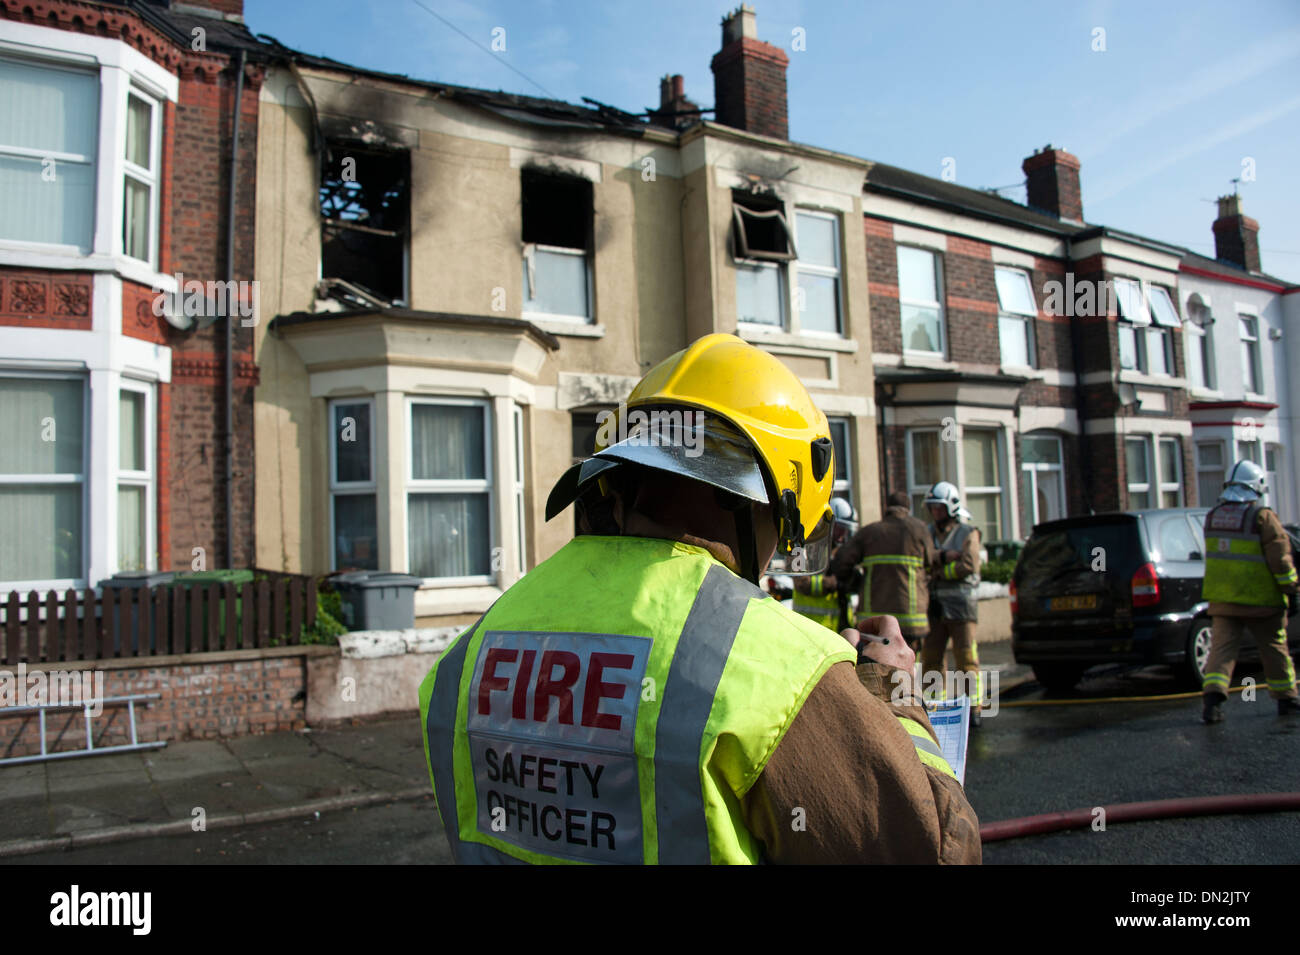 Fire Safety Officer outside burnt out house fire - Stock Image